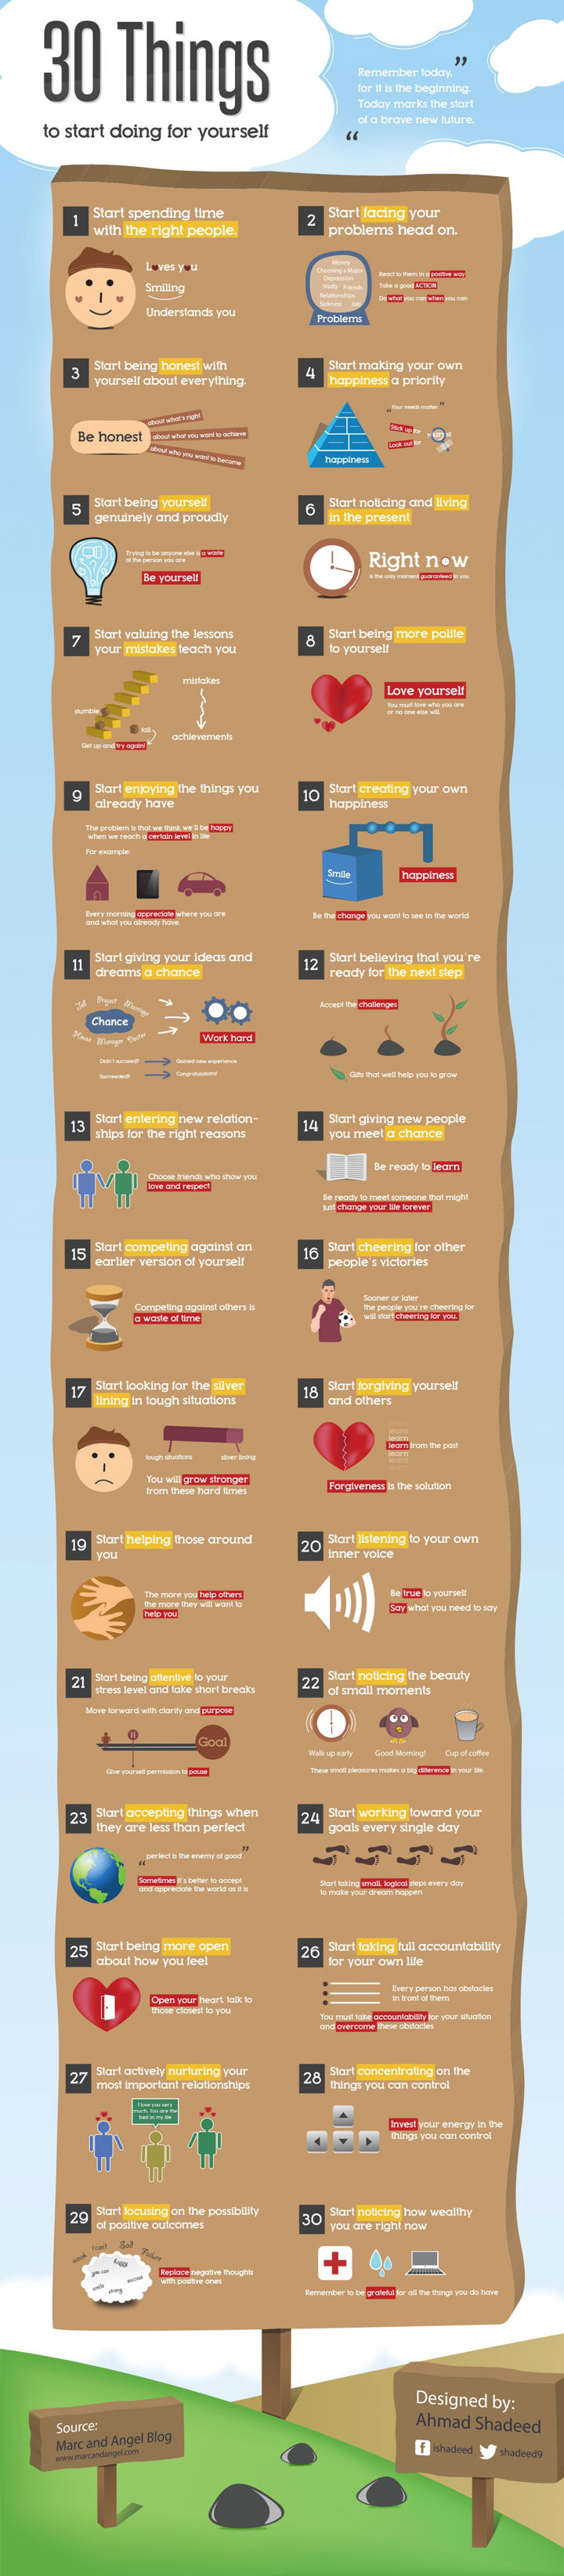 Creative-Exercises-for-Increasing-Motivation